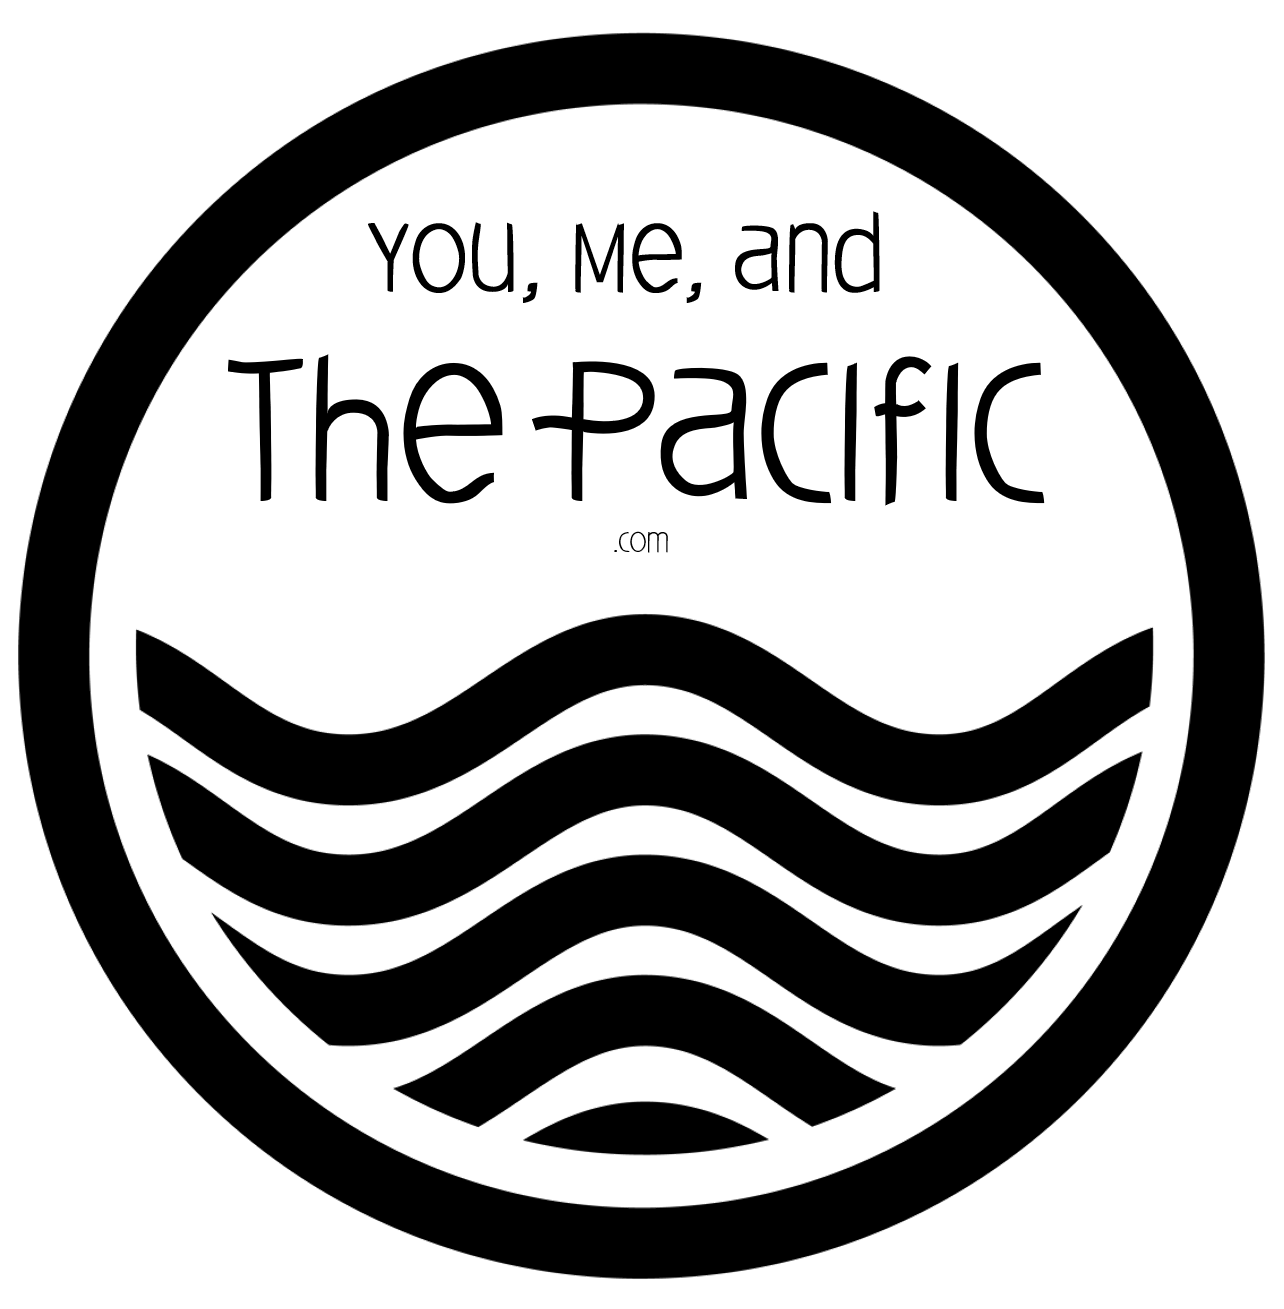 Pacific clipart #1, Download drawings